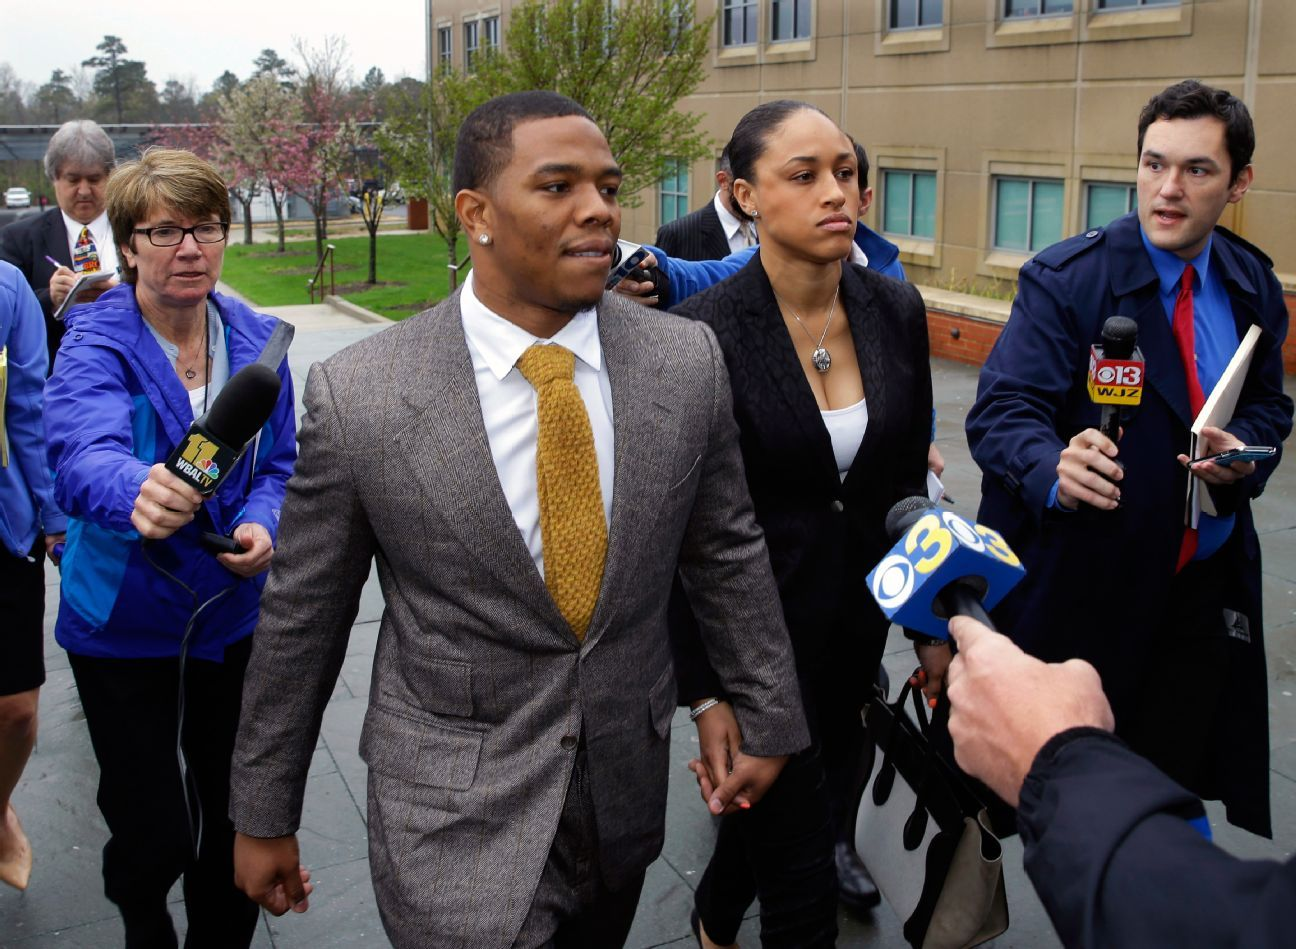 Rice case: purposeful misdirection by team, scant investigation by NFL